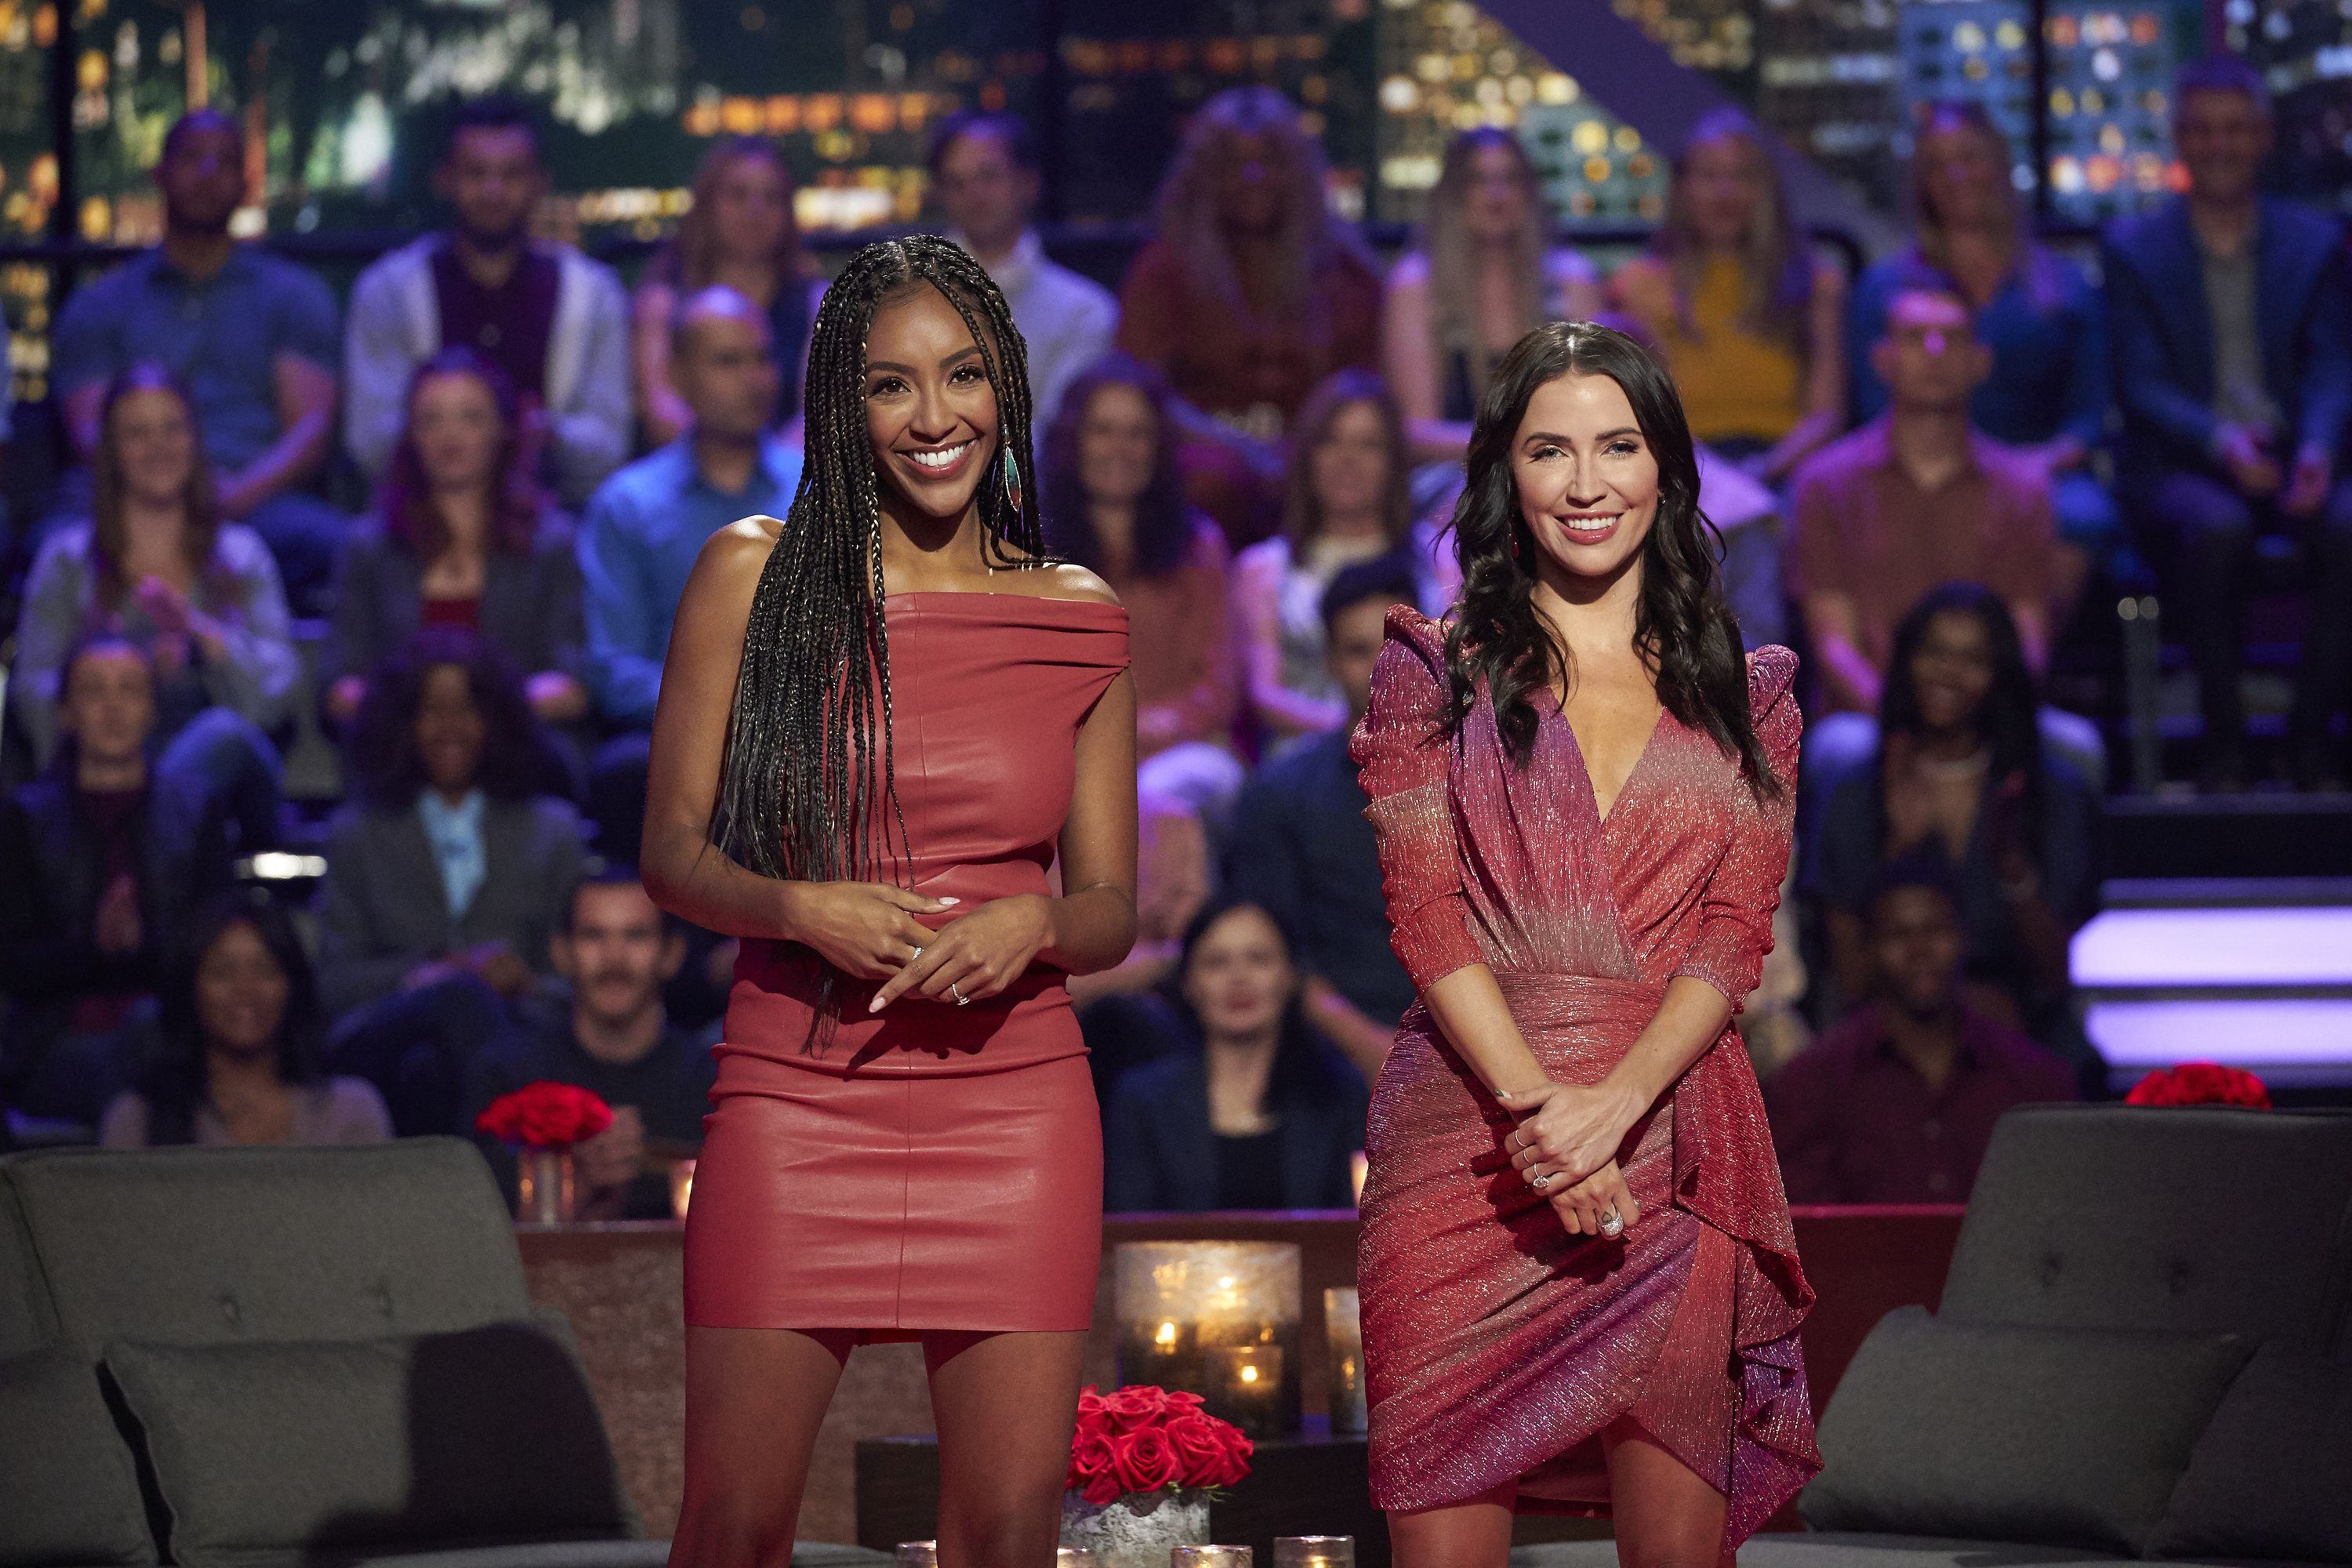 Yup, You Can Most Certainly Buy Kaitlyn Bristowe's Sparkly 'Bachelorette: Men Tell All' Dress